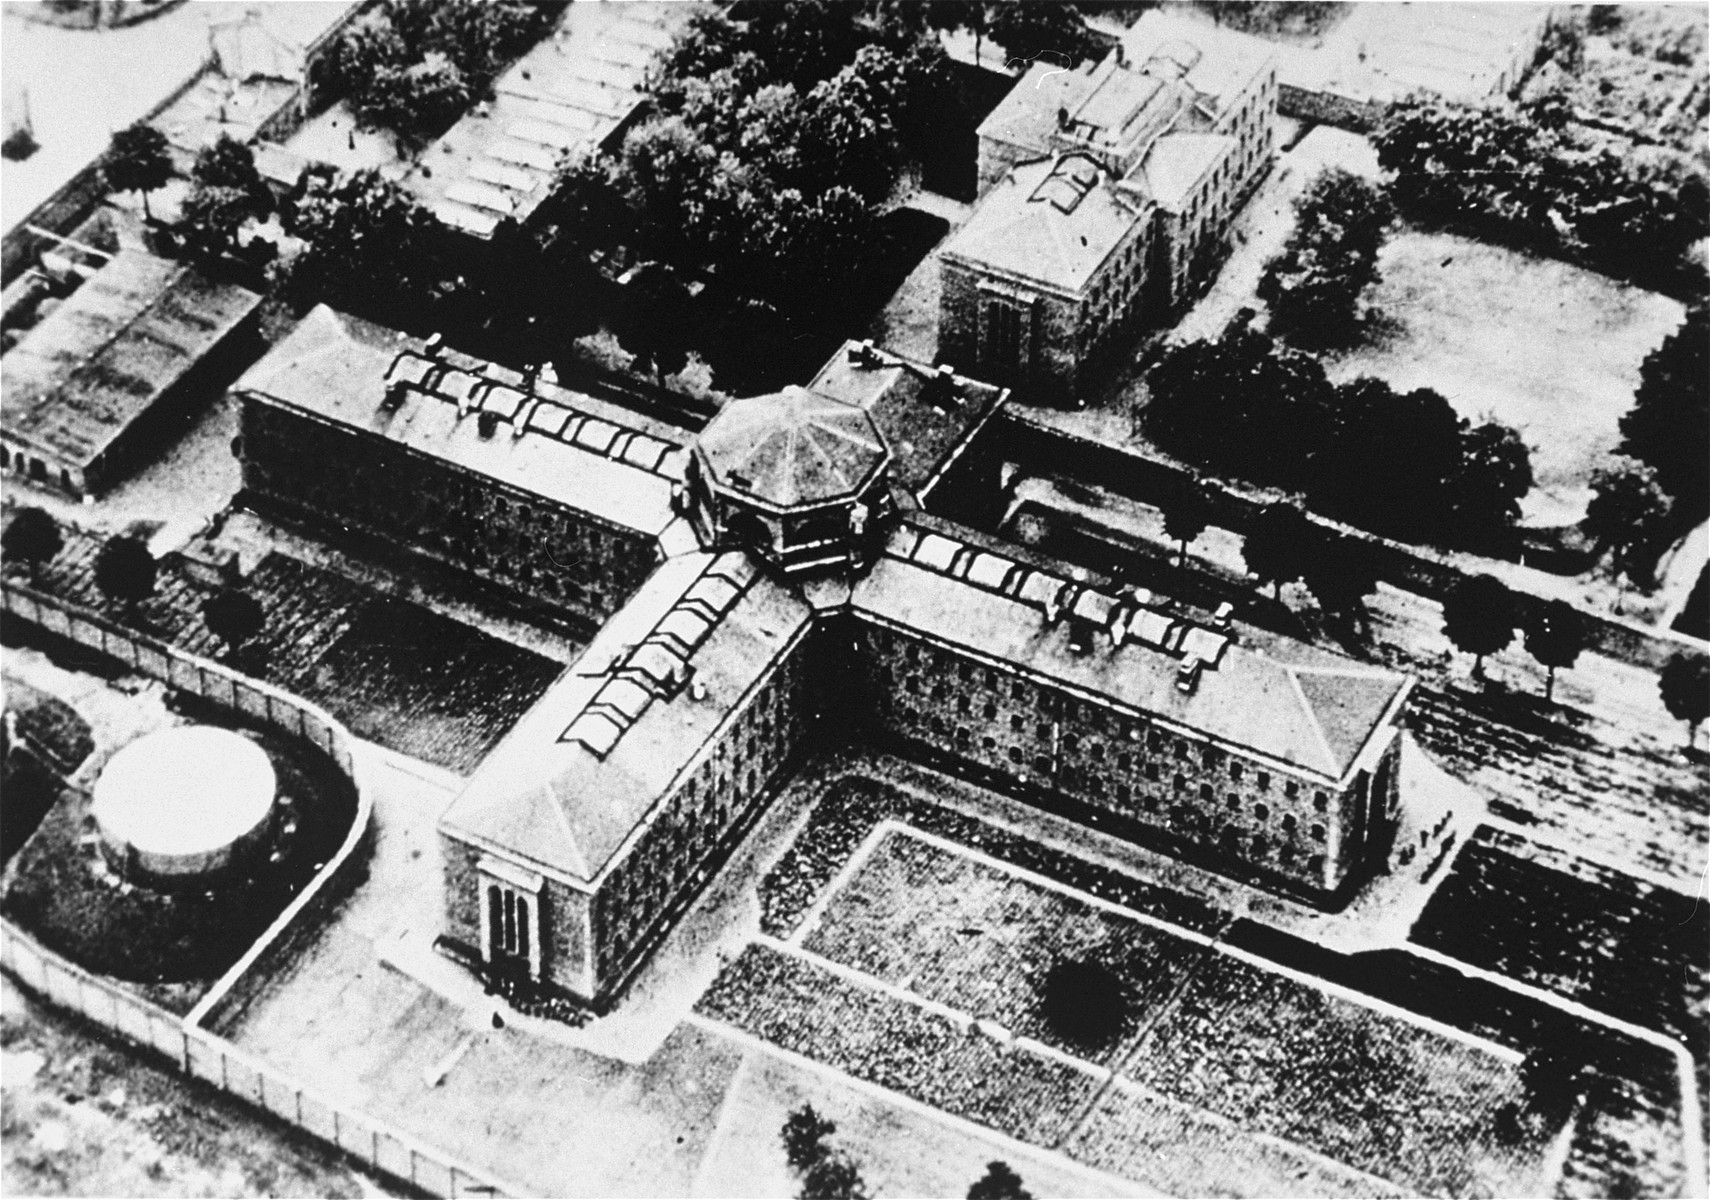 View of the Ploetzensee prison in Berlin.